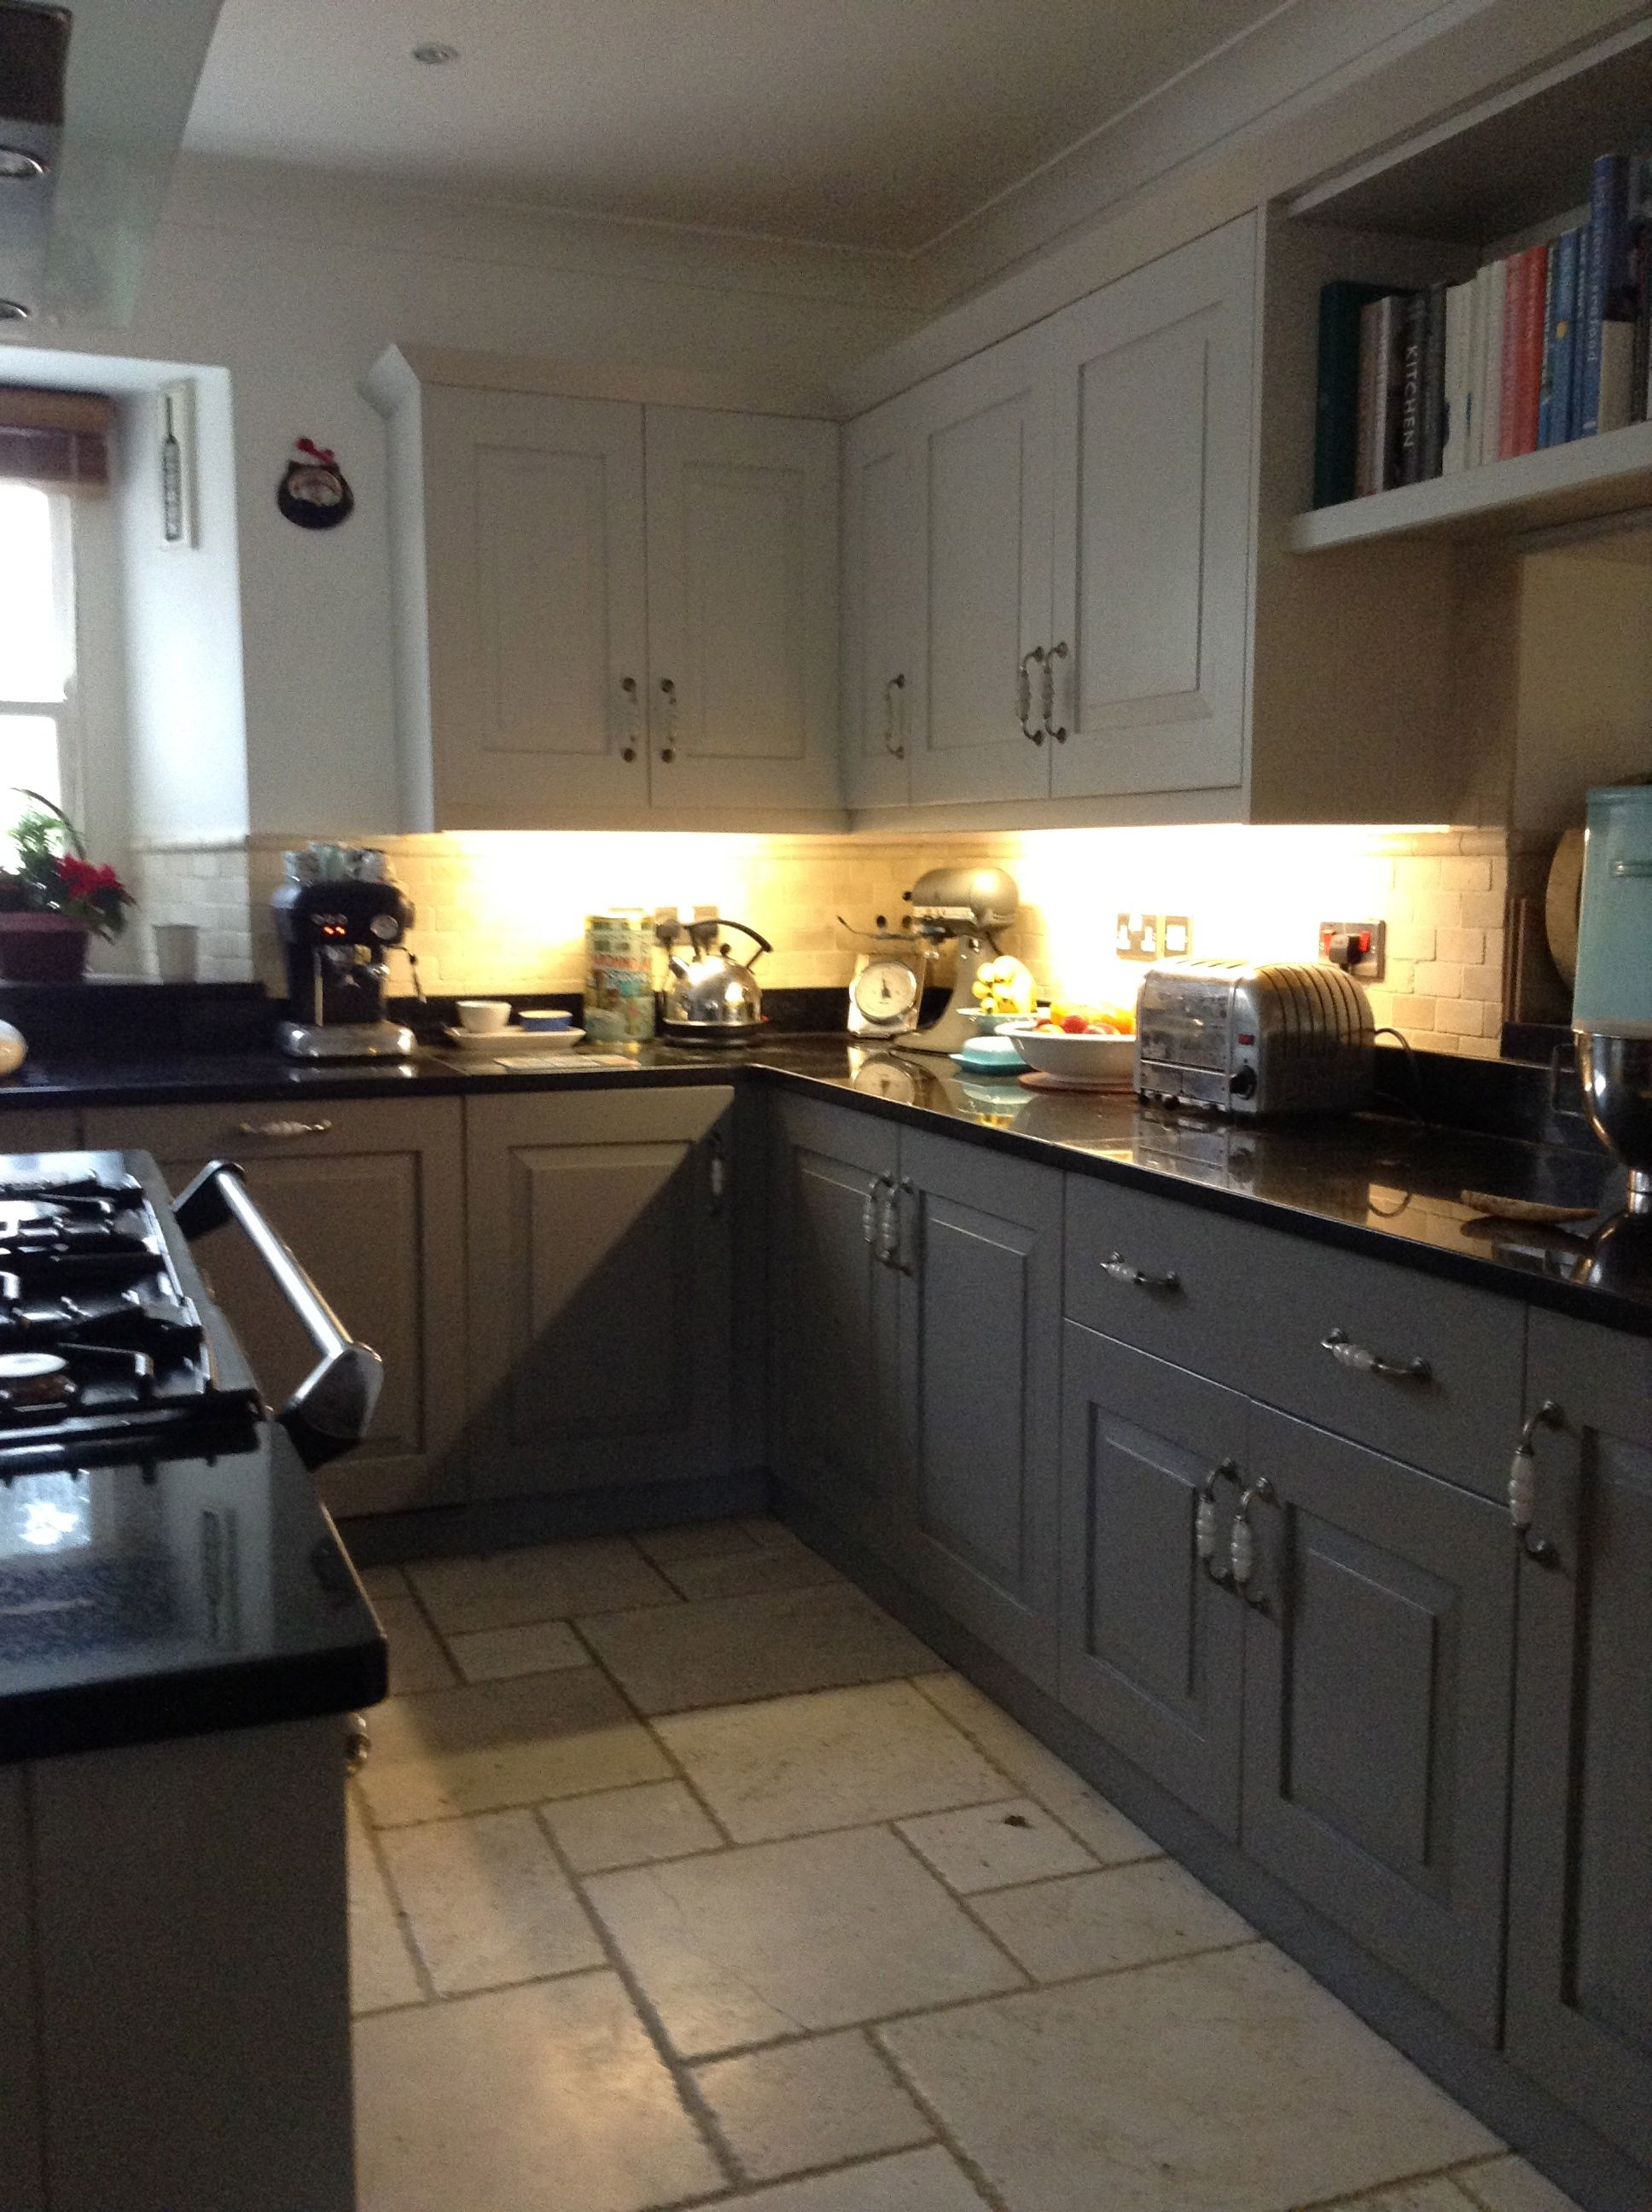 Painted Kitchen Floor Painted Kitchen Farrow And Ball Cornforth White And Moles